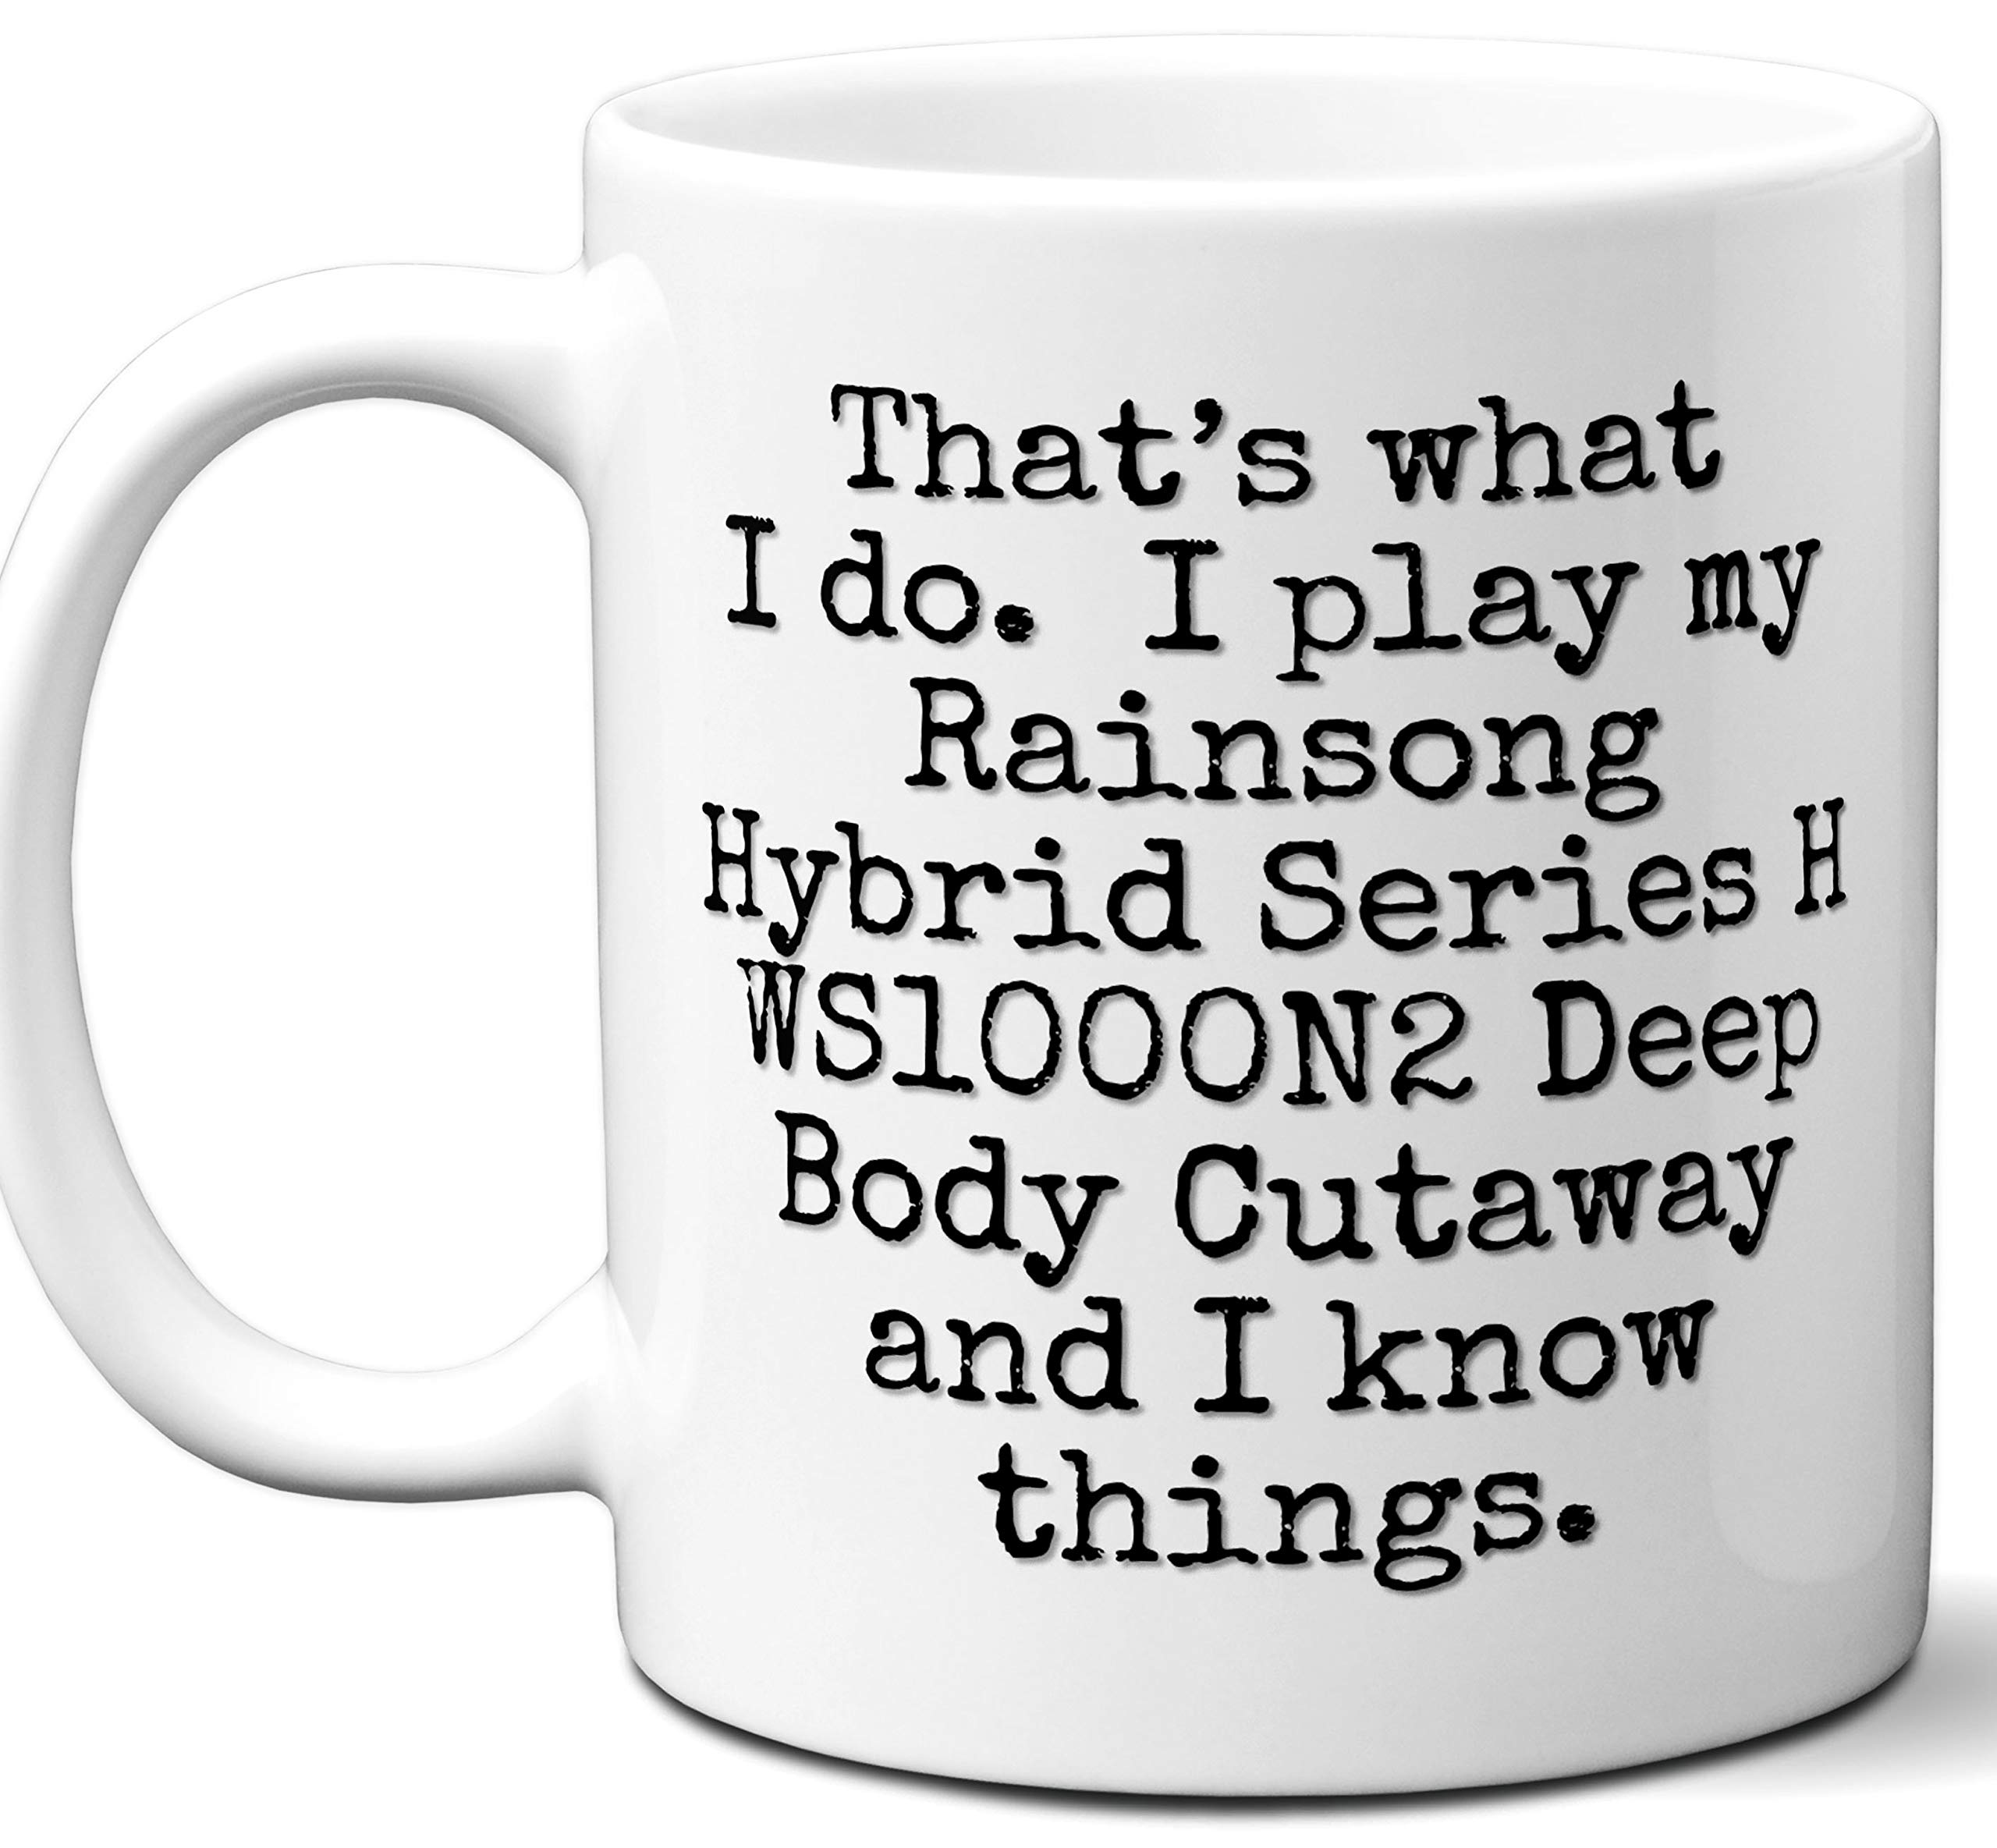 Guitar Gifts Mug. Rainsong Hybrid Series H WS1000N2 Deep Body Cutaway Guitar Players Lover Accessories Music Teacher Lover Him Her Funny Dad Men Women Card Pick Musician Acoustic Unique by Ombura